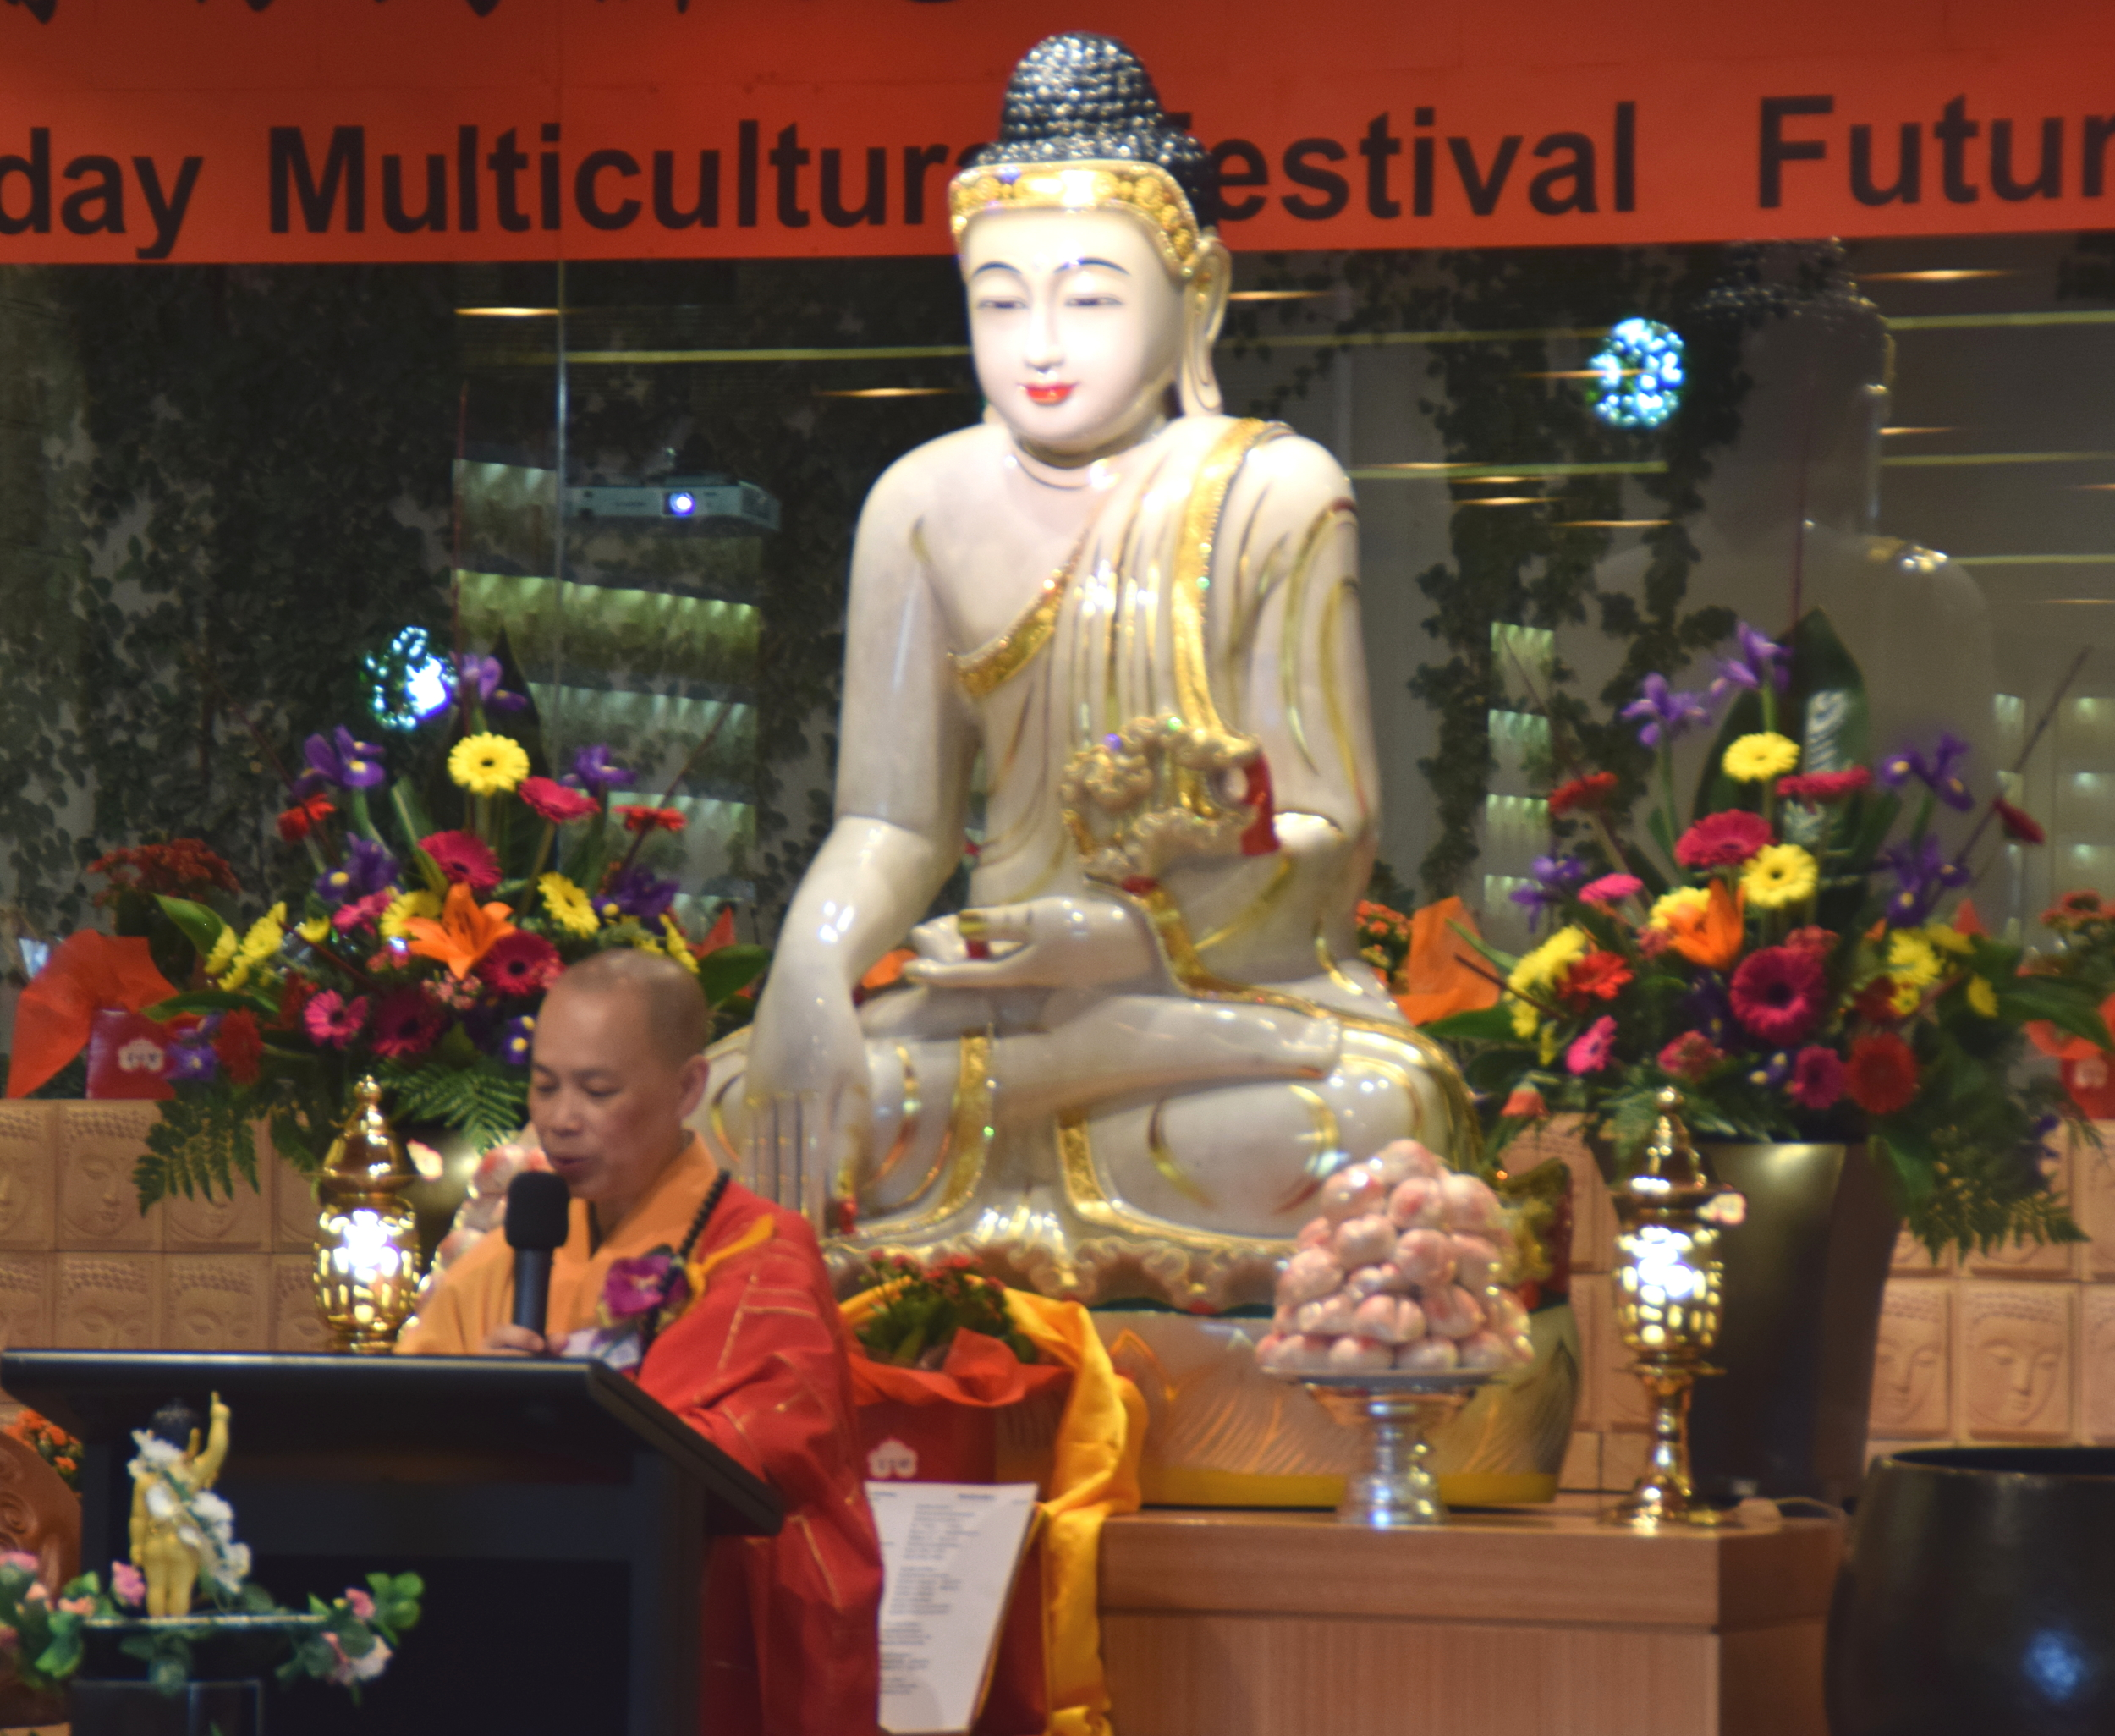 Venerable Man Shin, Abbess of Fo Guang Shan Buddhist Temple NZ, addressing the gathering